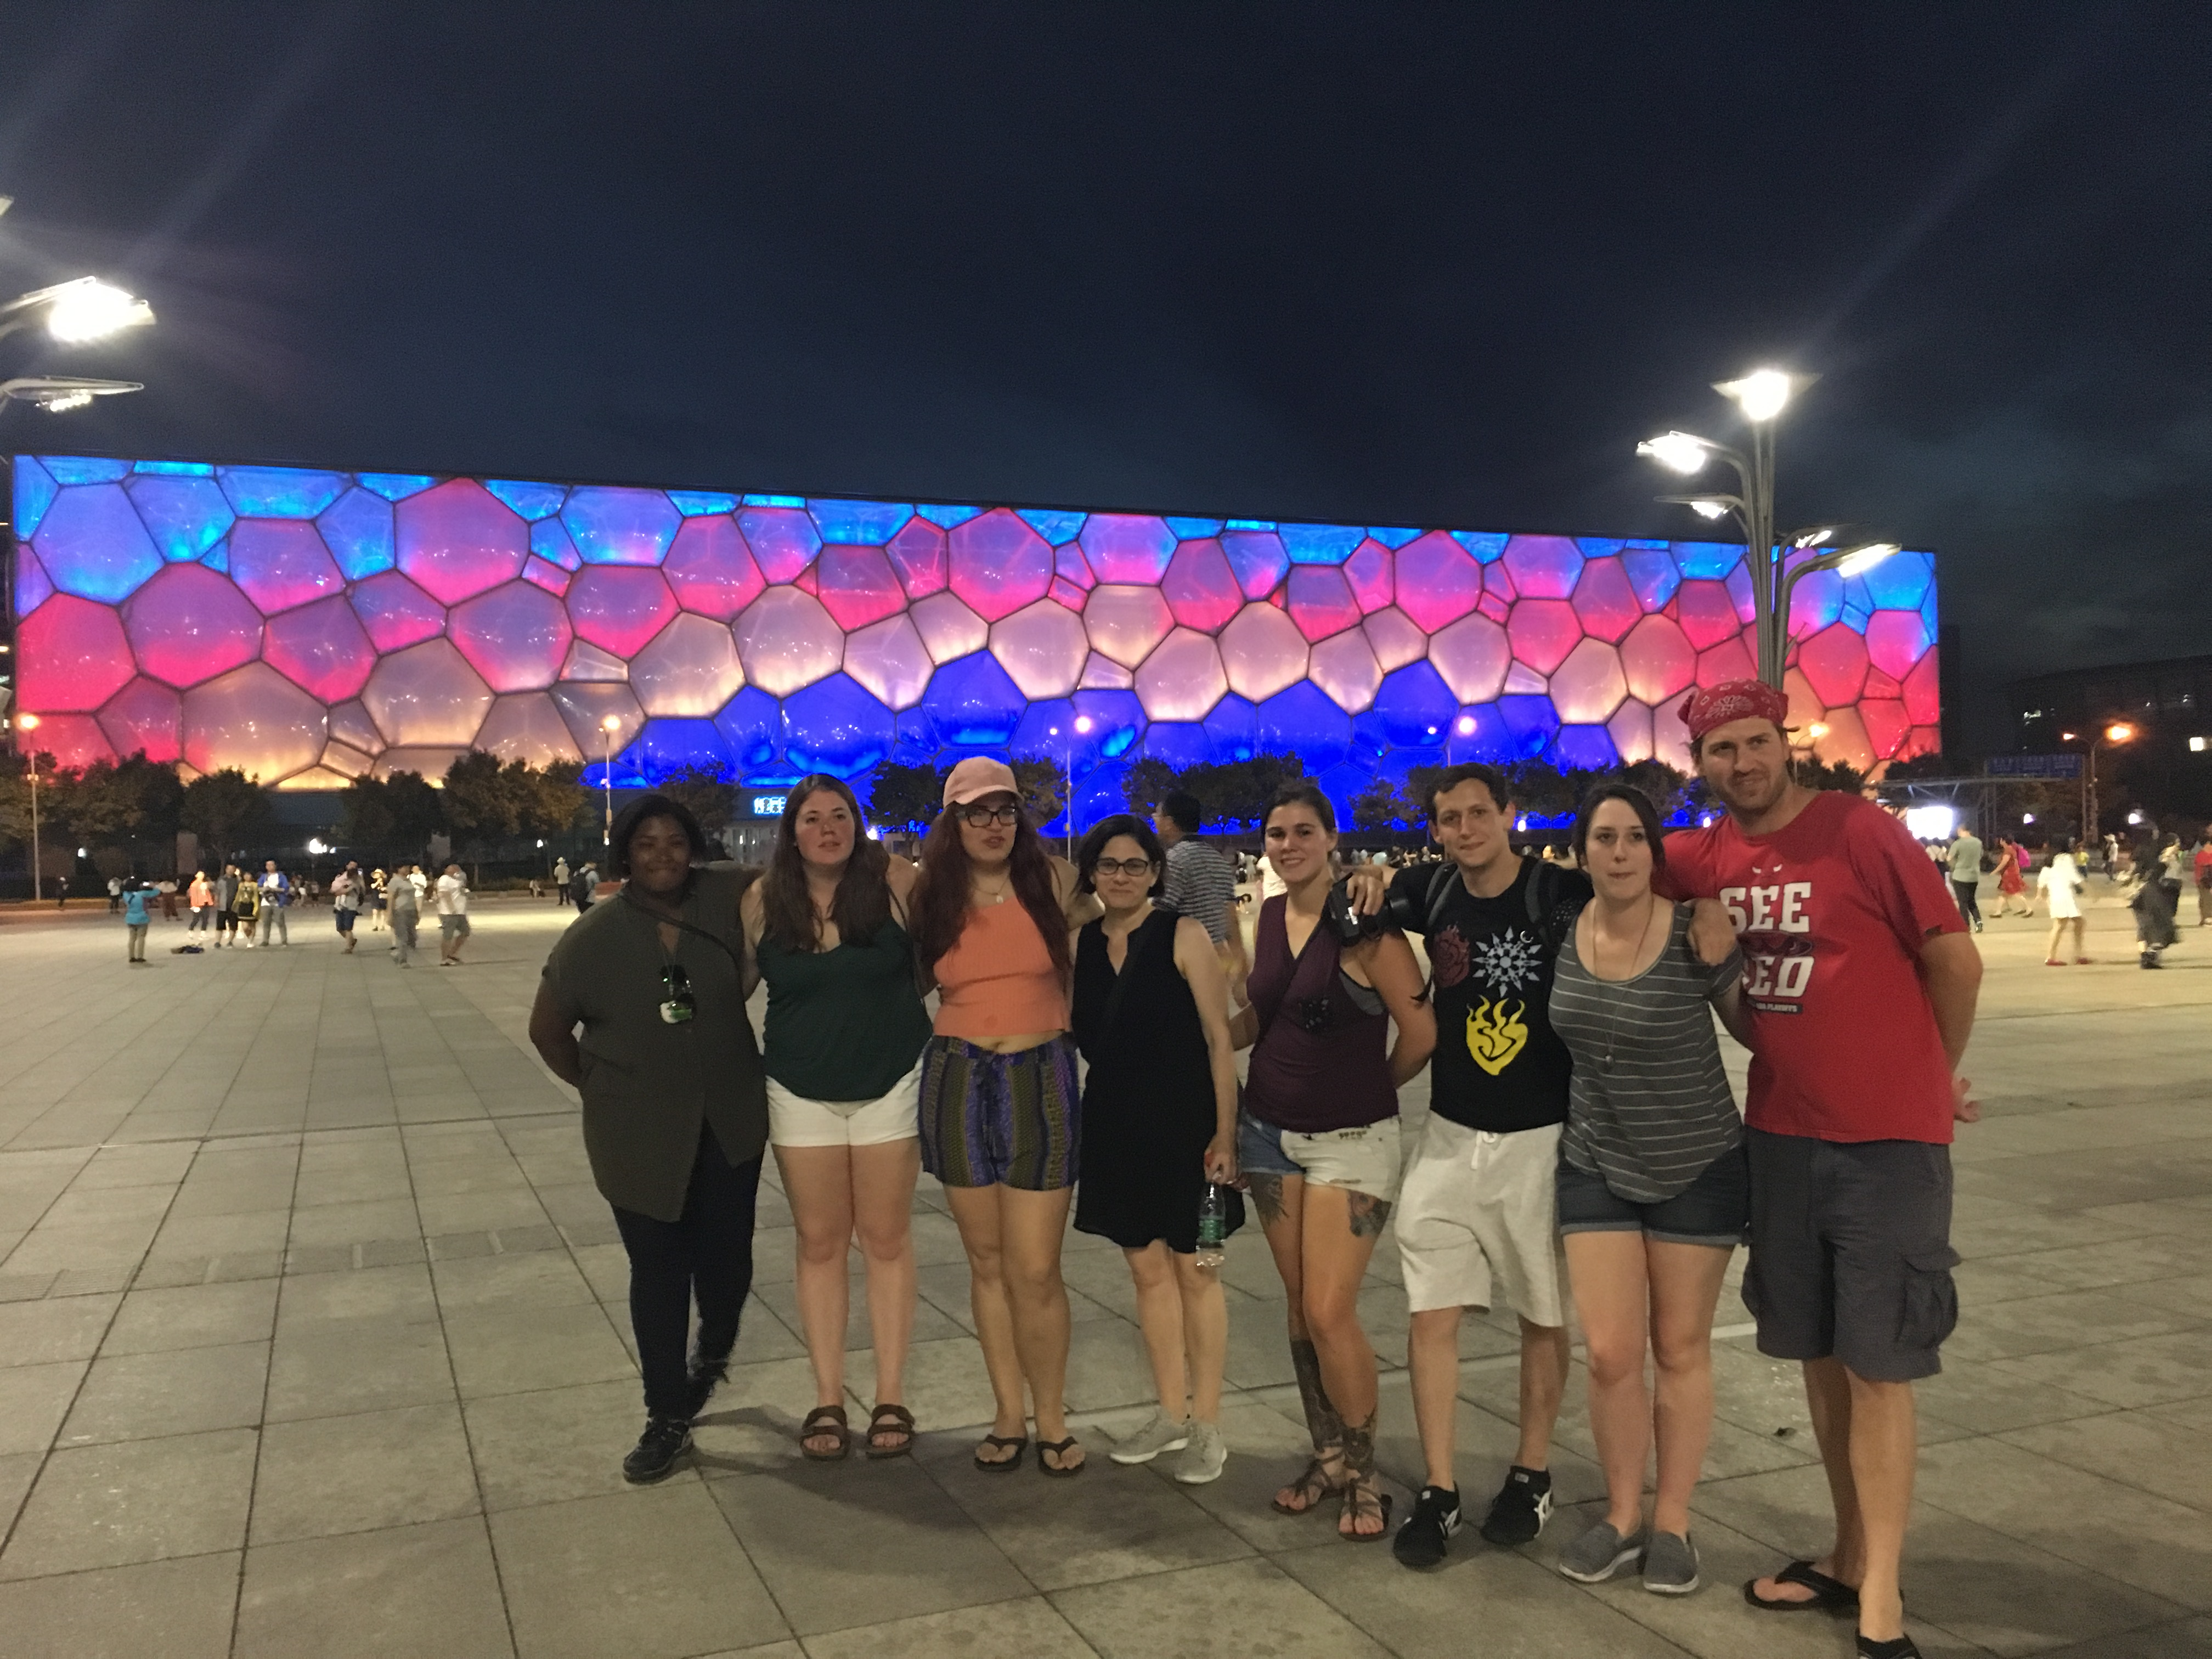 olympic park Visiting China A Study Abroad Experience jjc Joliet Junior College